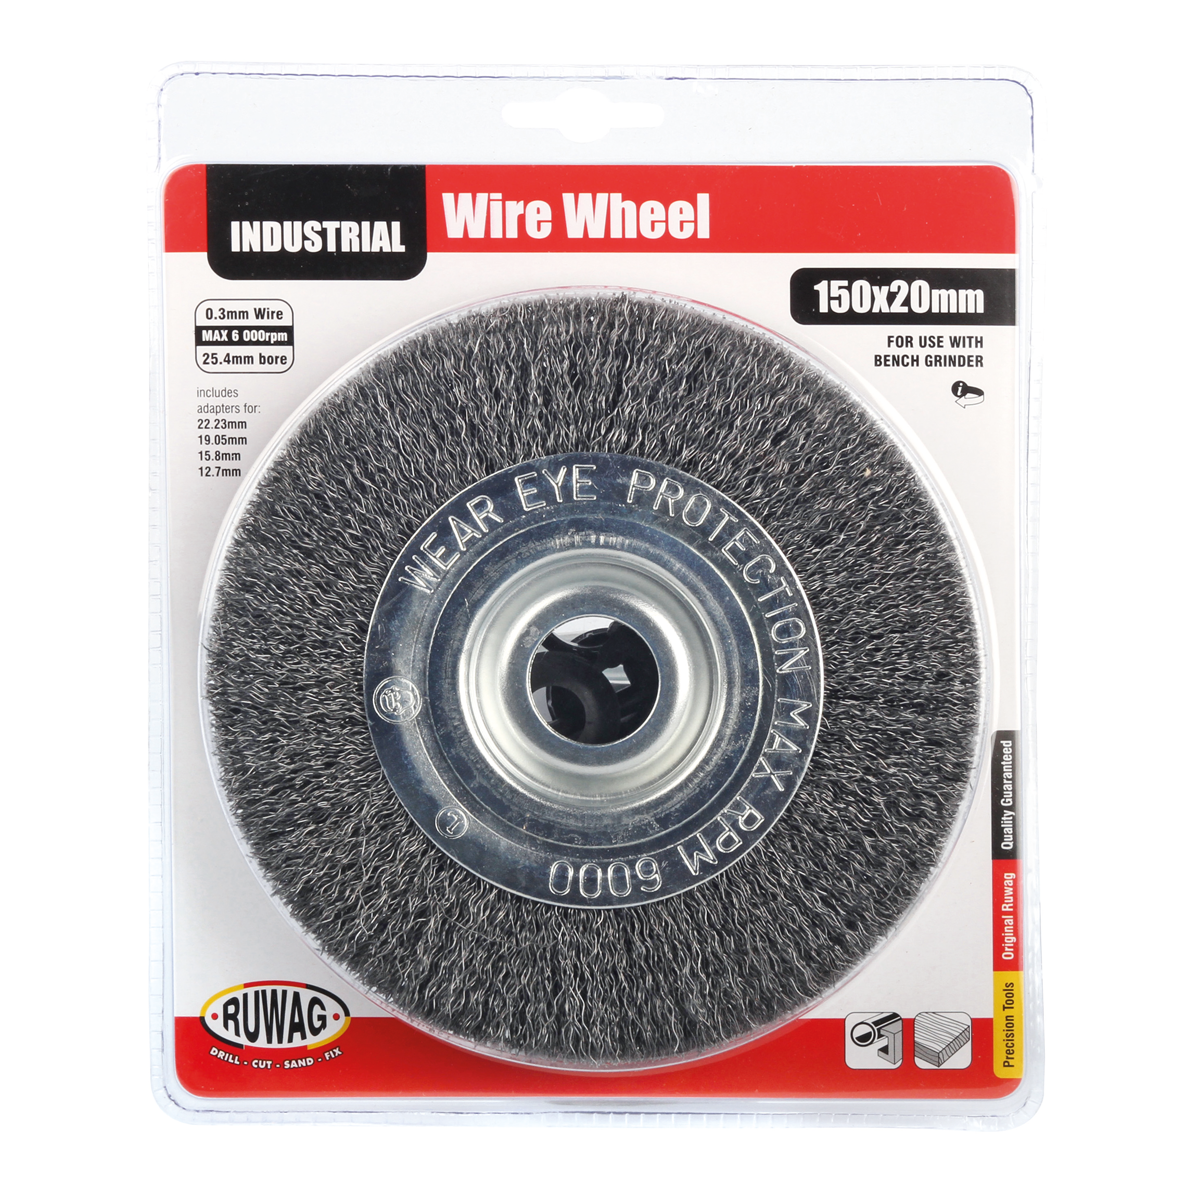 Outstanding Wire Wheel 25 4Mm Bore With Adapters Ruwag Sa Caraccident5 Cool Chair Designs And Ideas Caraccident5Info